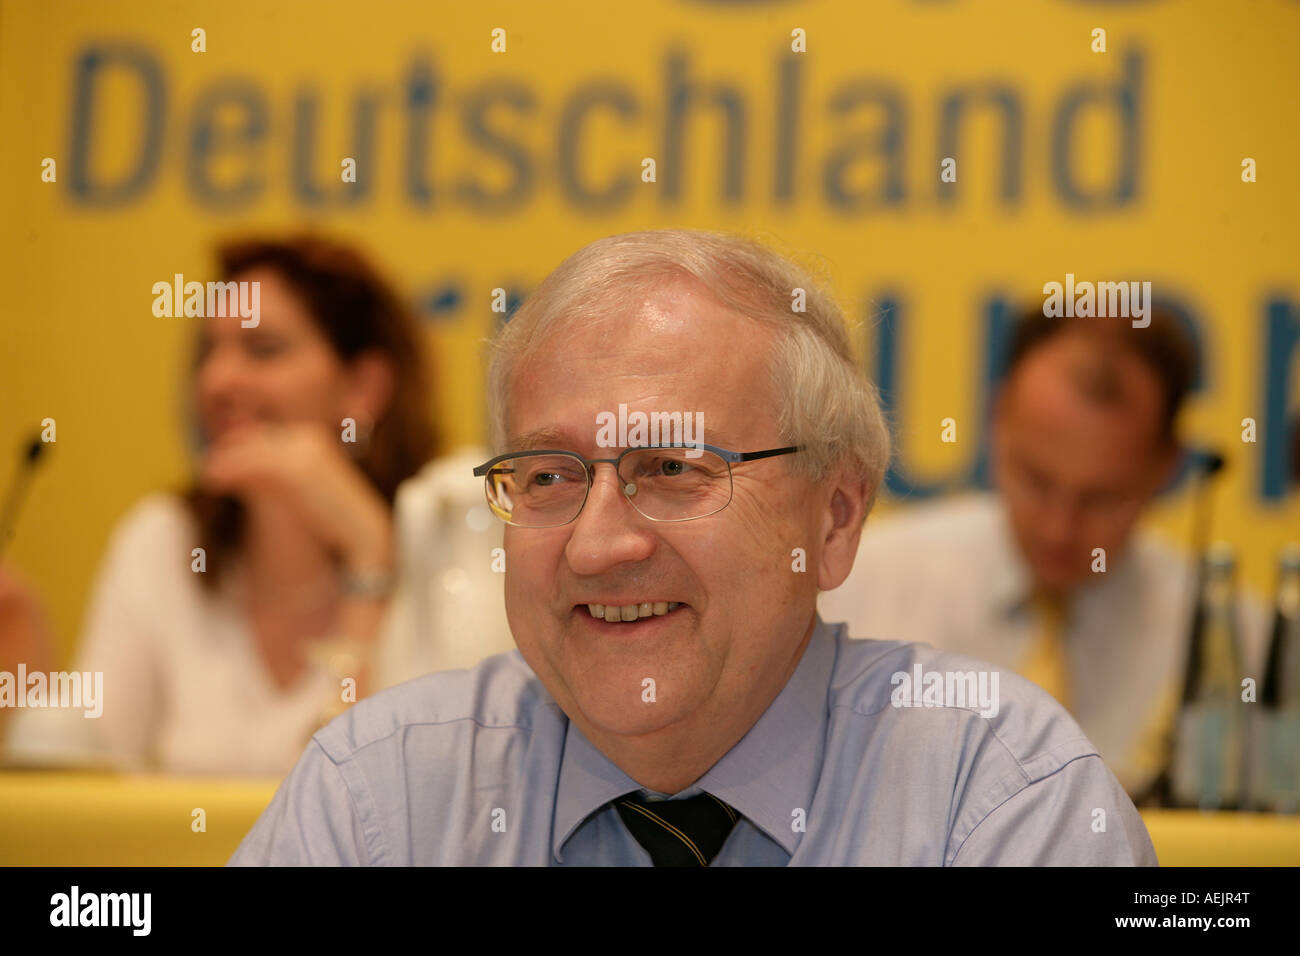 Rainer Bruederle, chairman of the liberal democrat party during a party congress, Germany - Stock Image